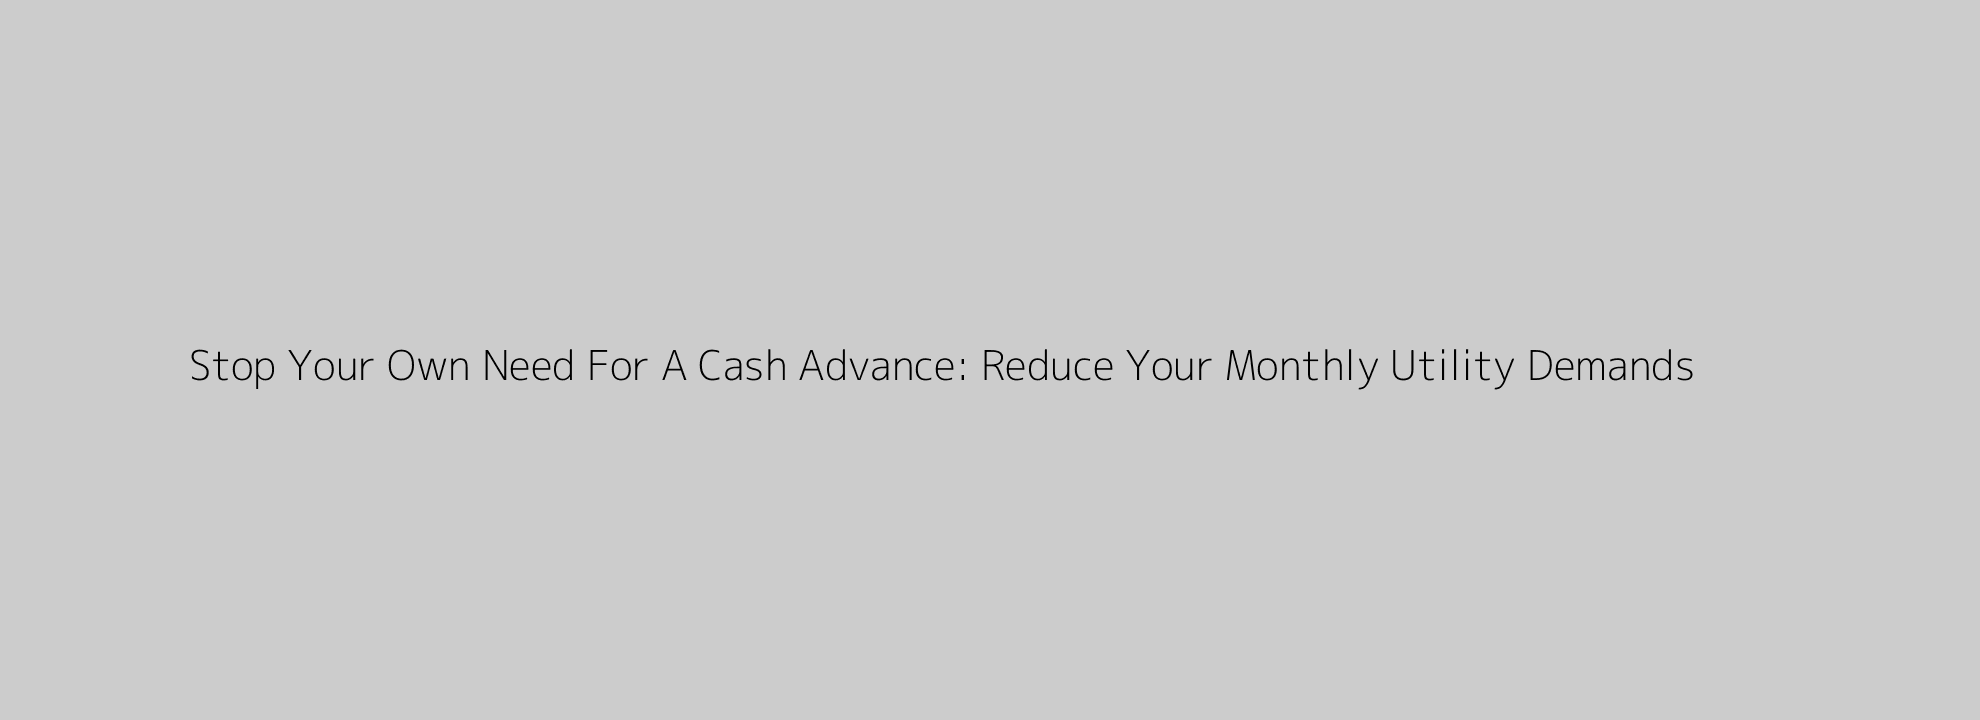 Stop Your Own Need For A Cash Advance: Reduce Your Monthly Utility Demands